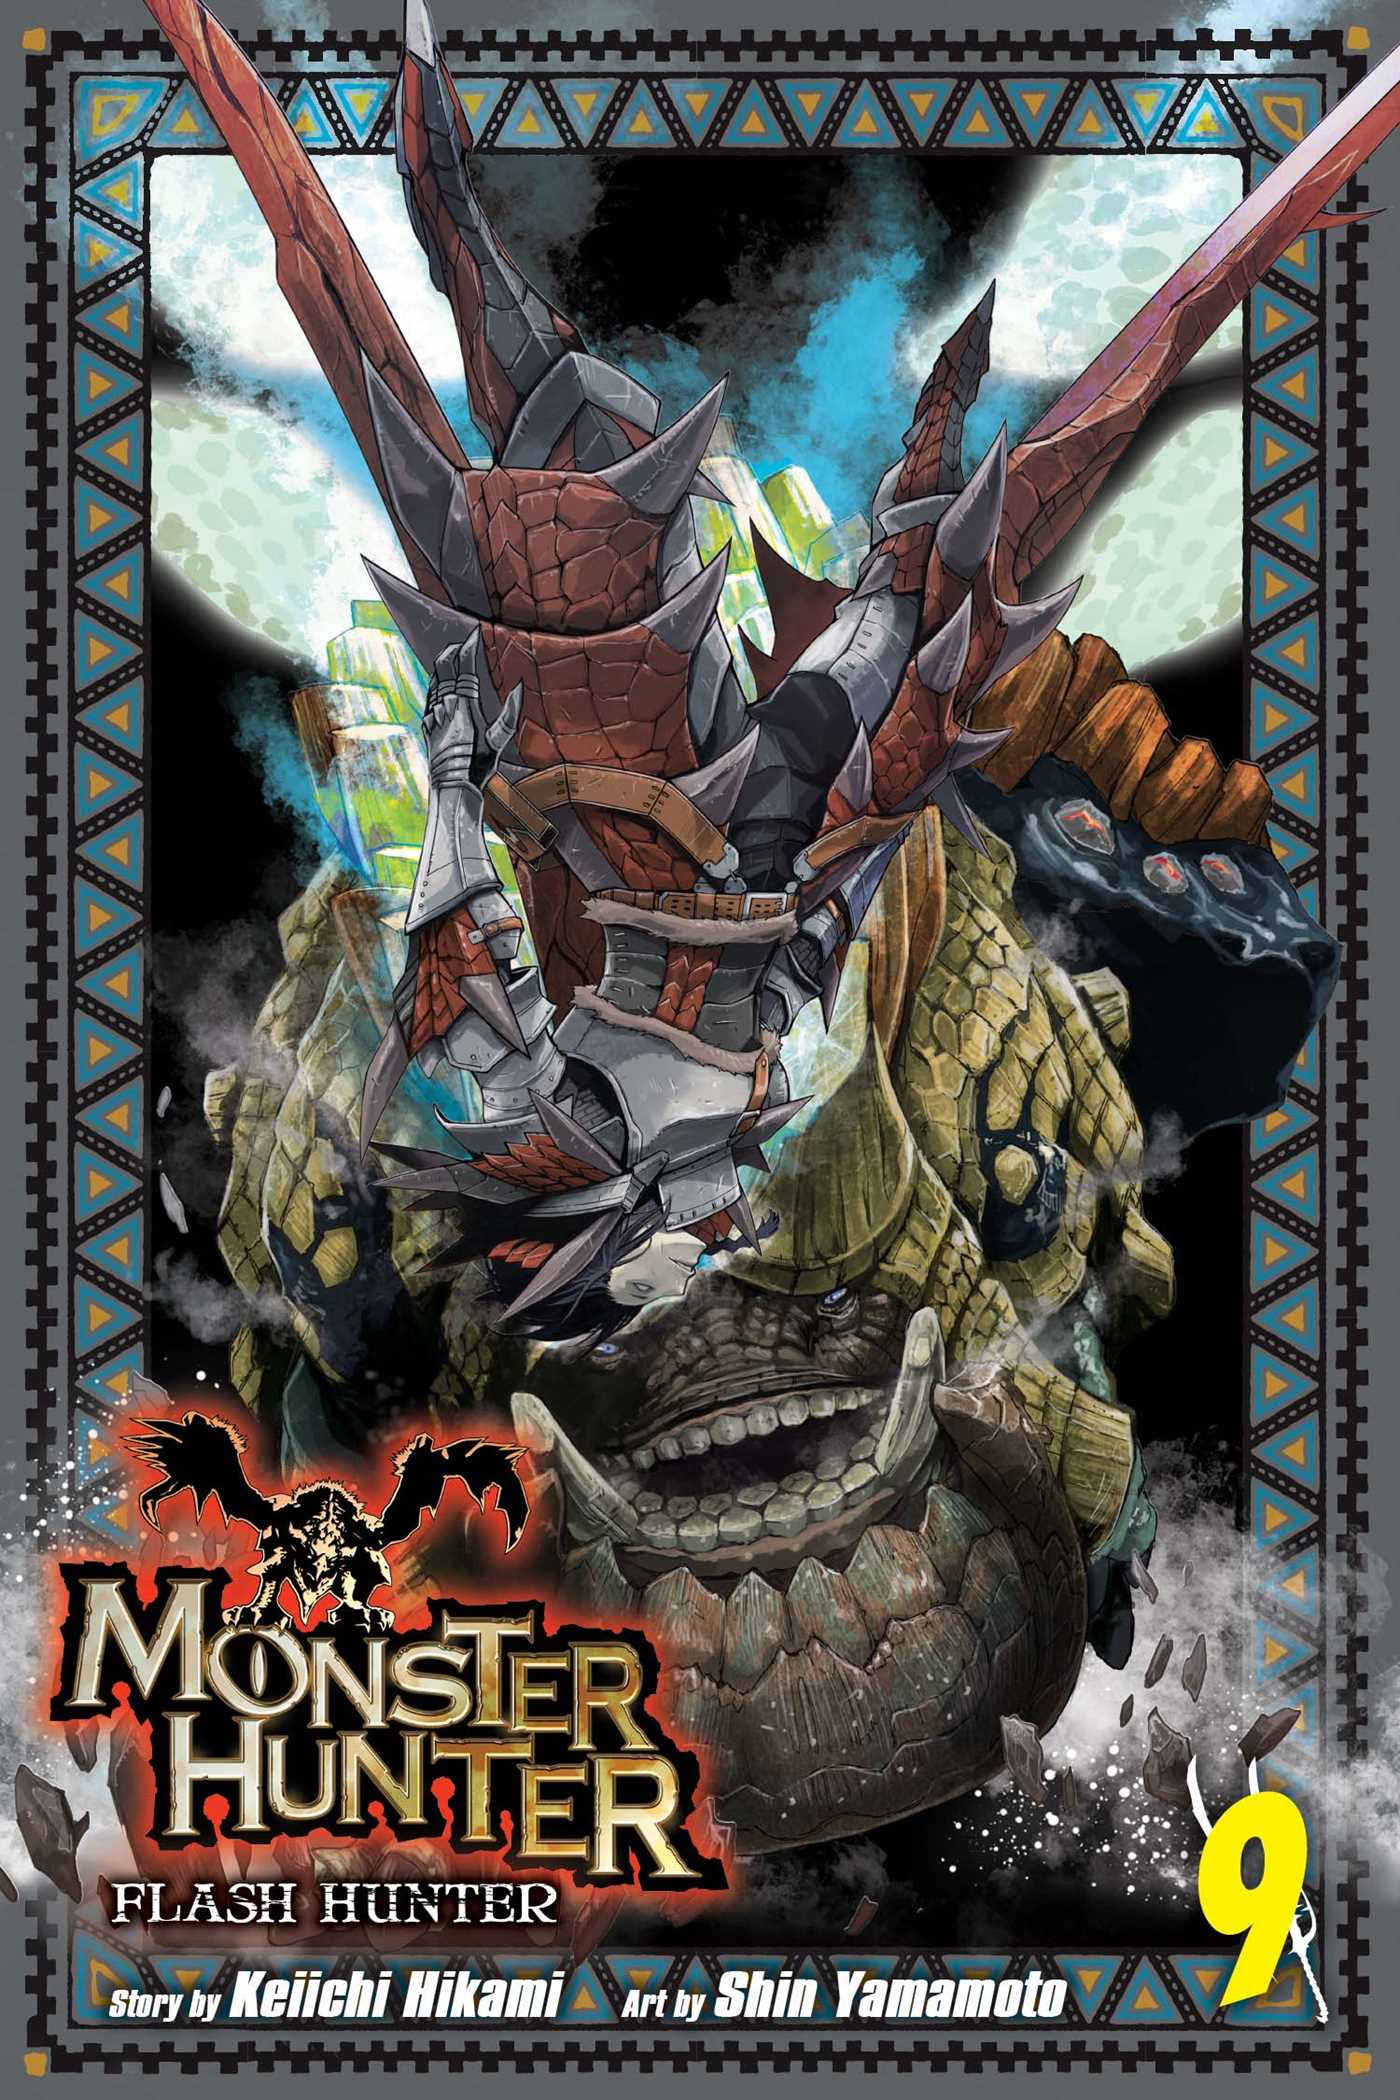 Monster hunter flash hunter vol 9 9781421584348 hr